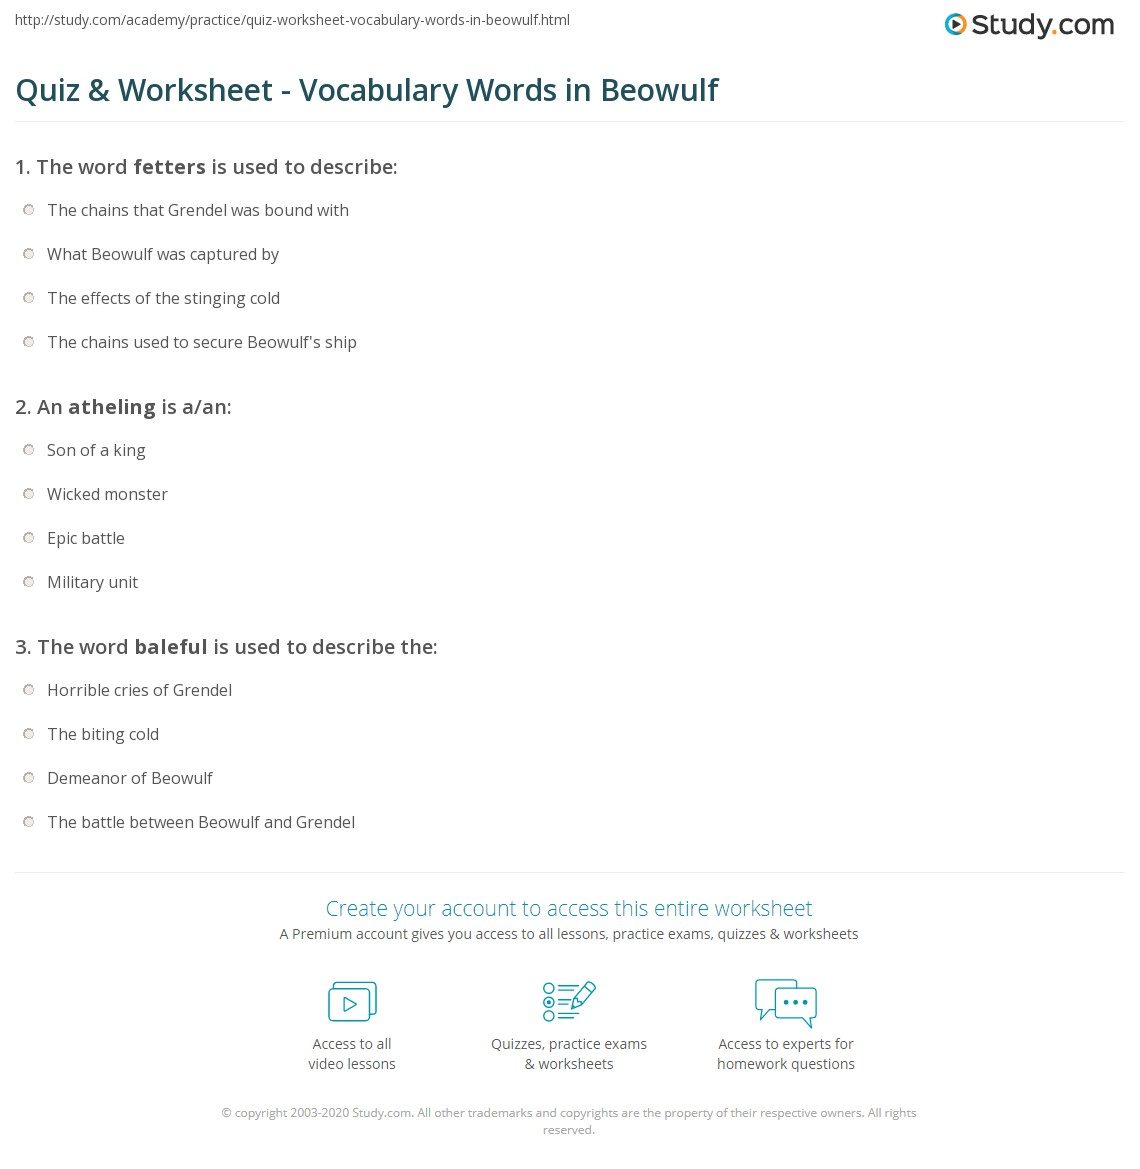 Printables Beowulf Worksheets quiz worksheet vocabulary words in beowulf study com print key worksheet